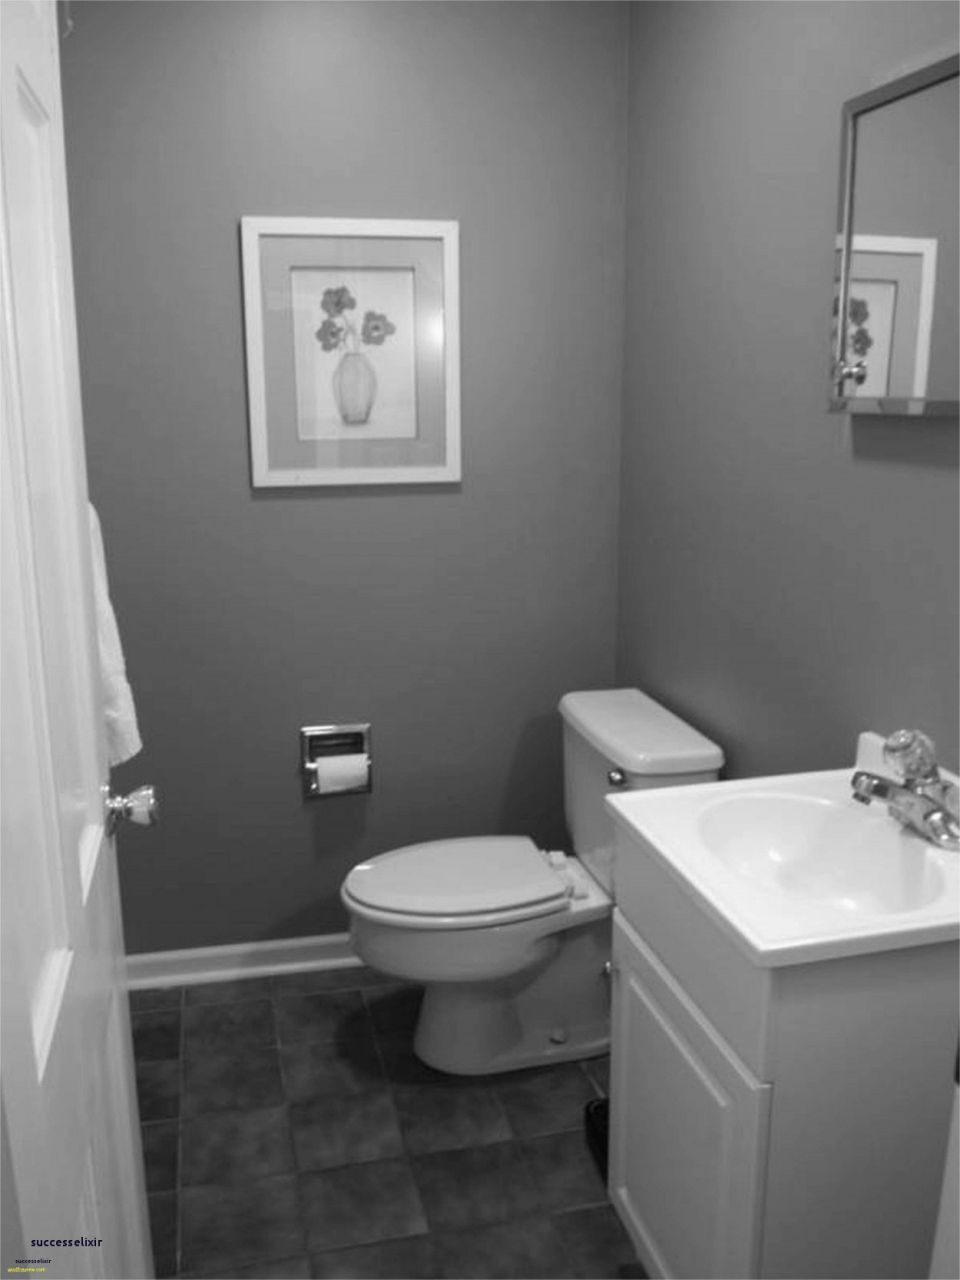 201 Black And White Bathroom Sink Check More At Https Www